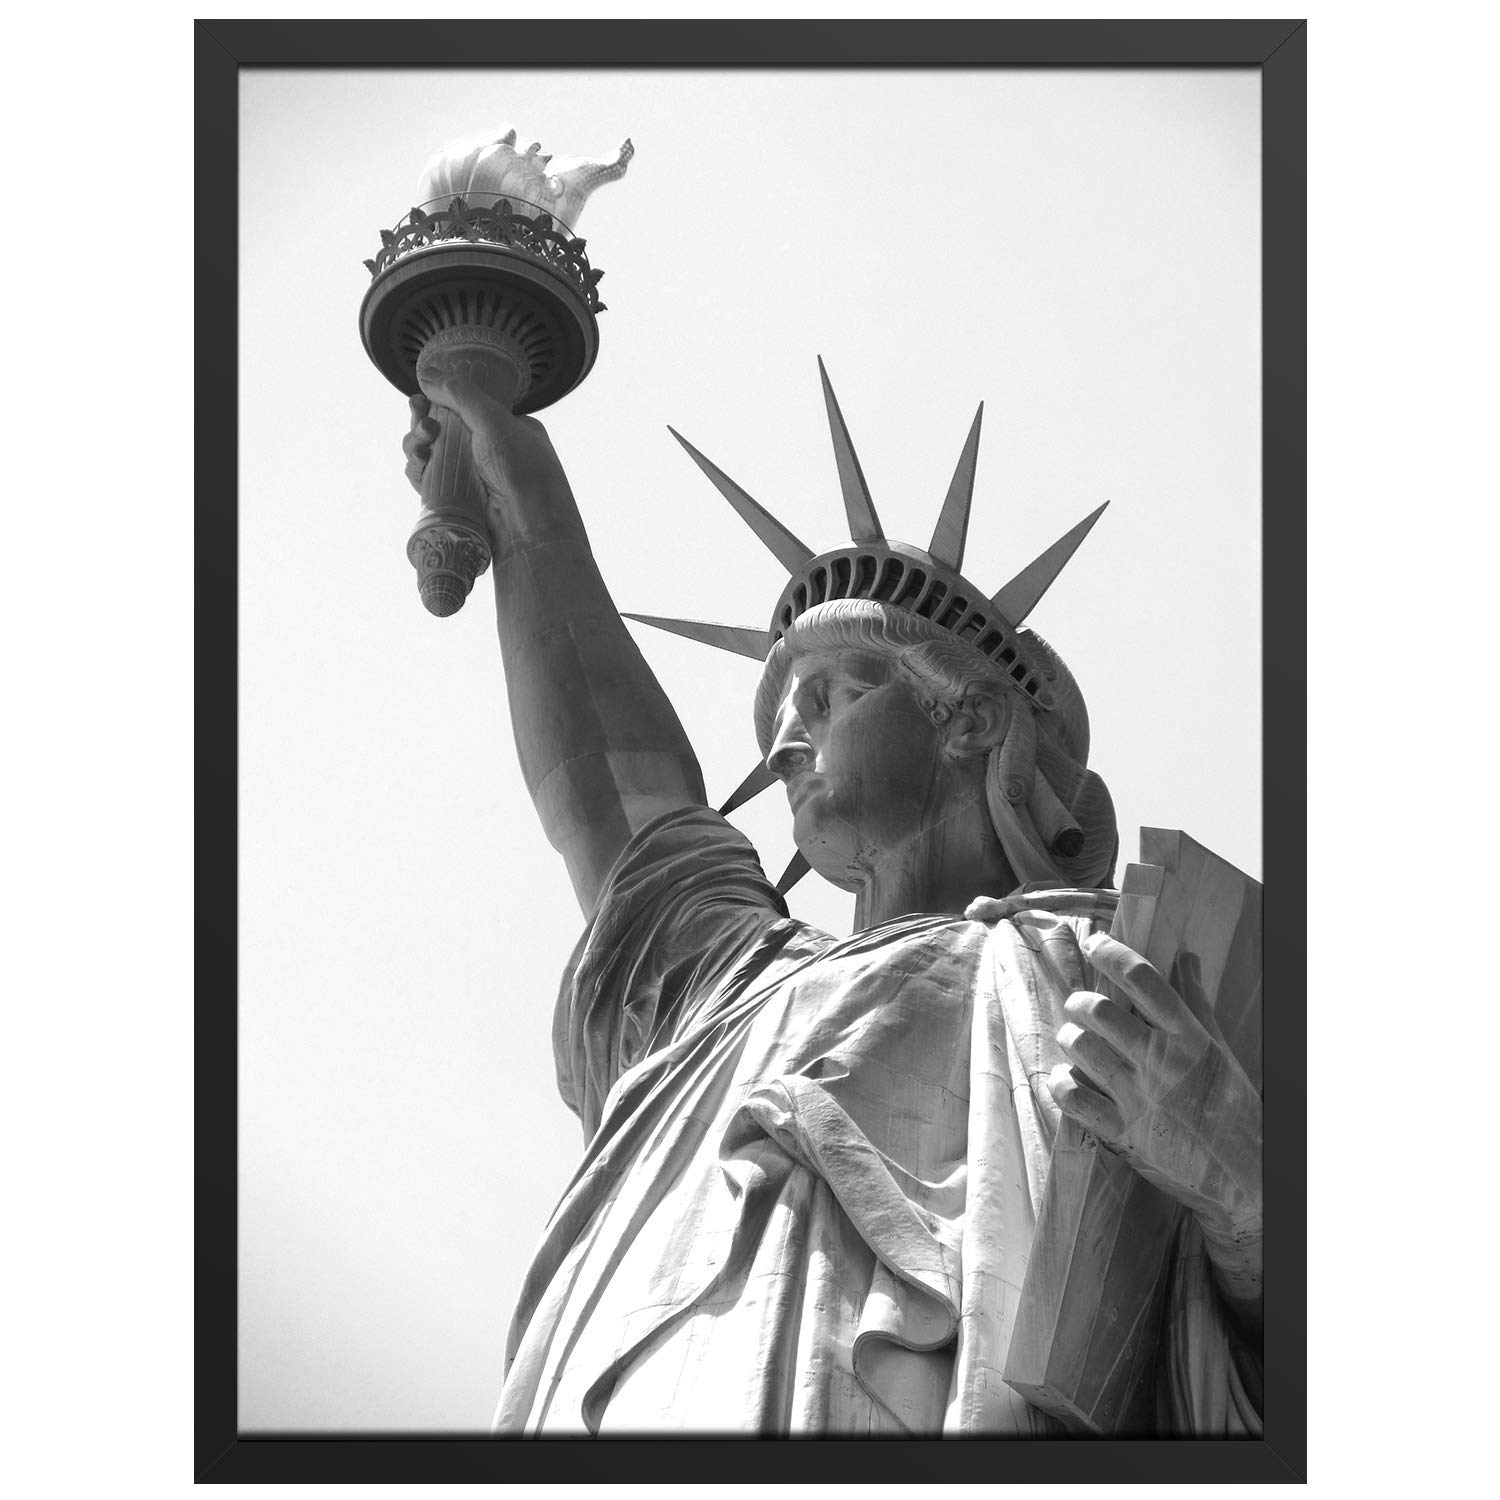 ONE WALL Tempered Glass 18x24 Poster Frame, Black Wood Photo Picture Frame for Wall Vertically or Horizontally Display - Mounting Hardware Included